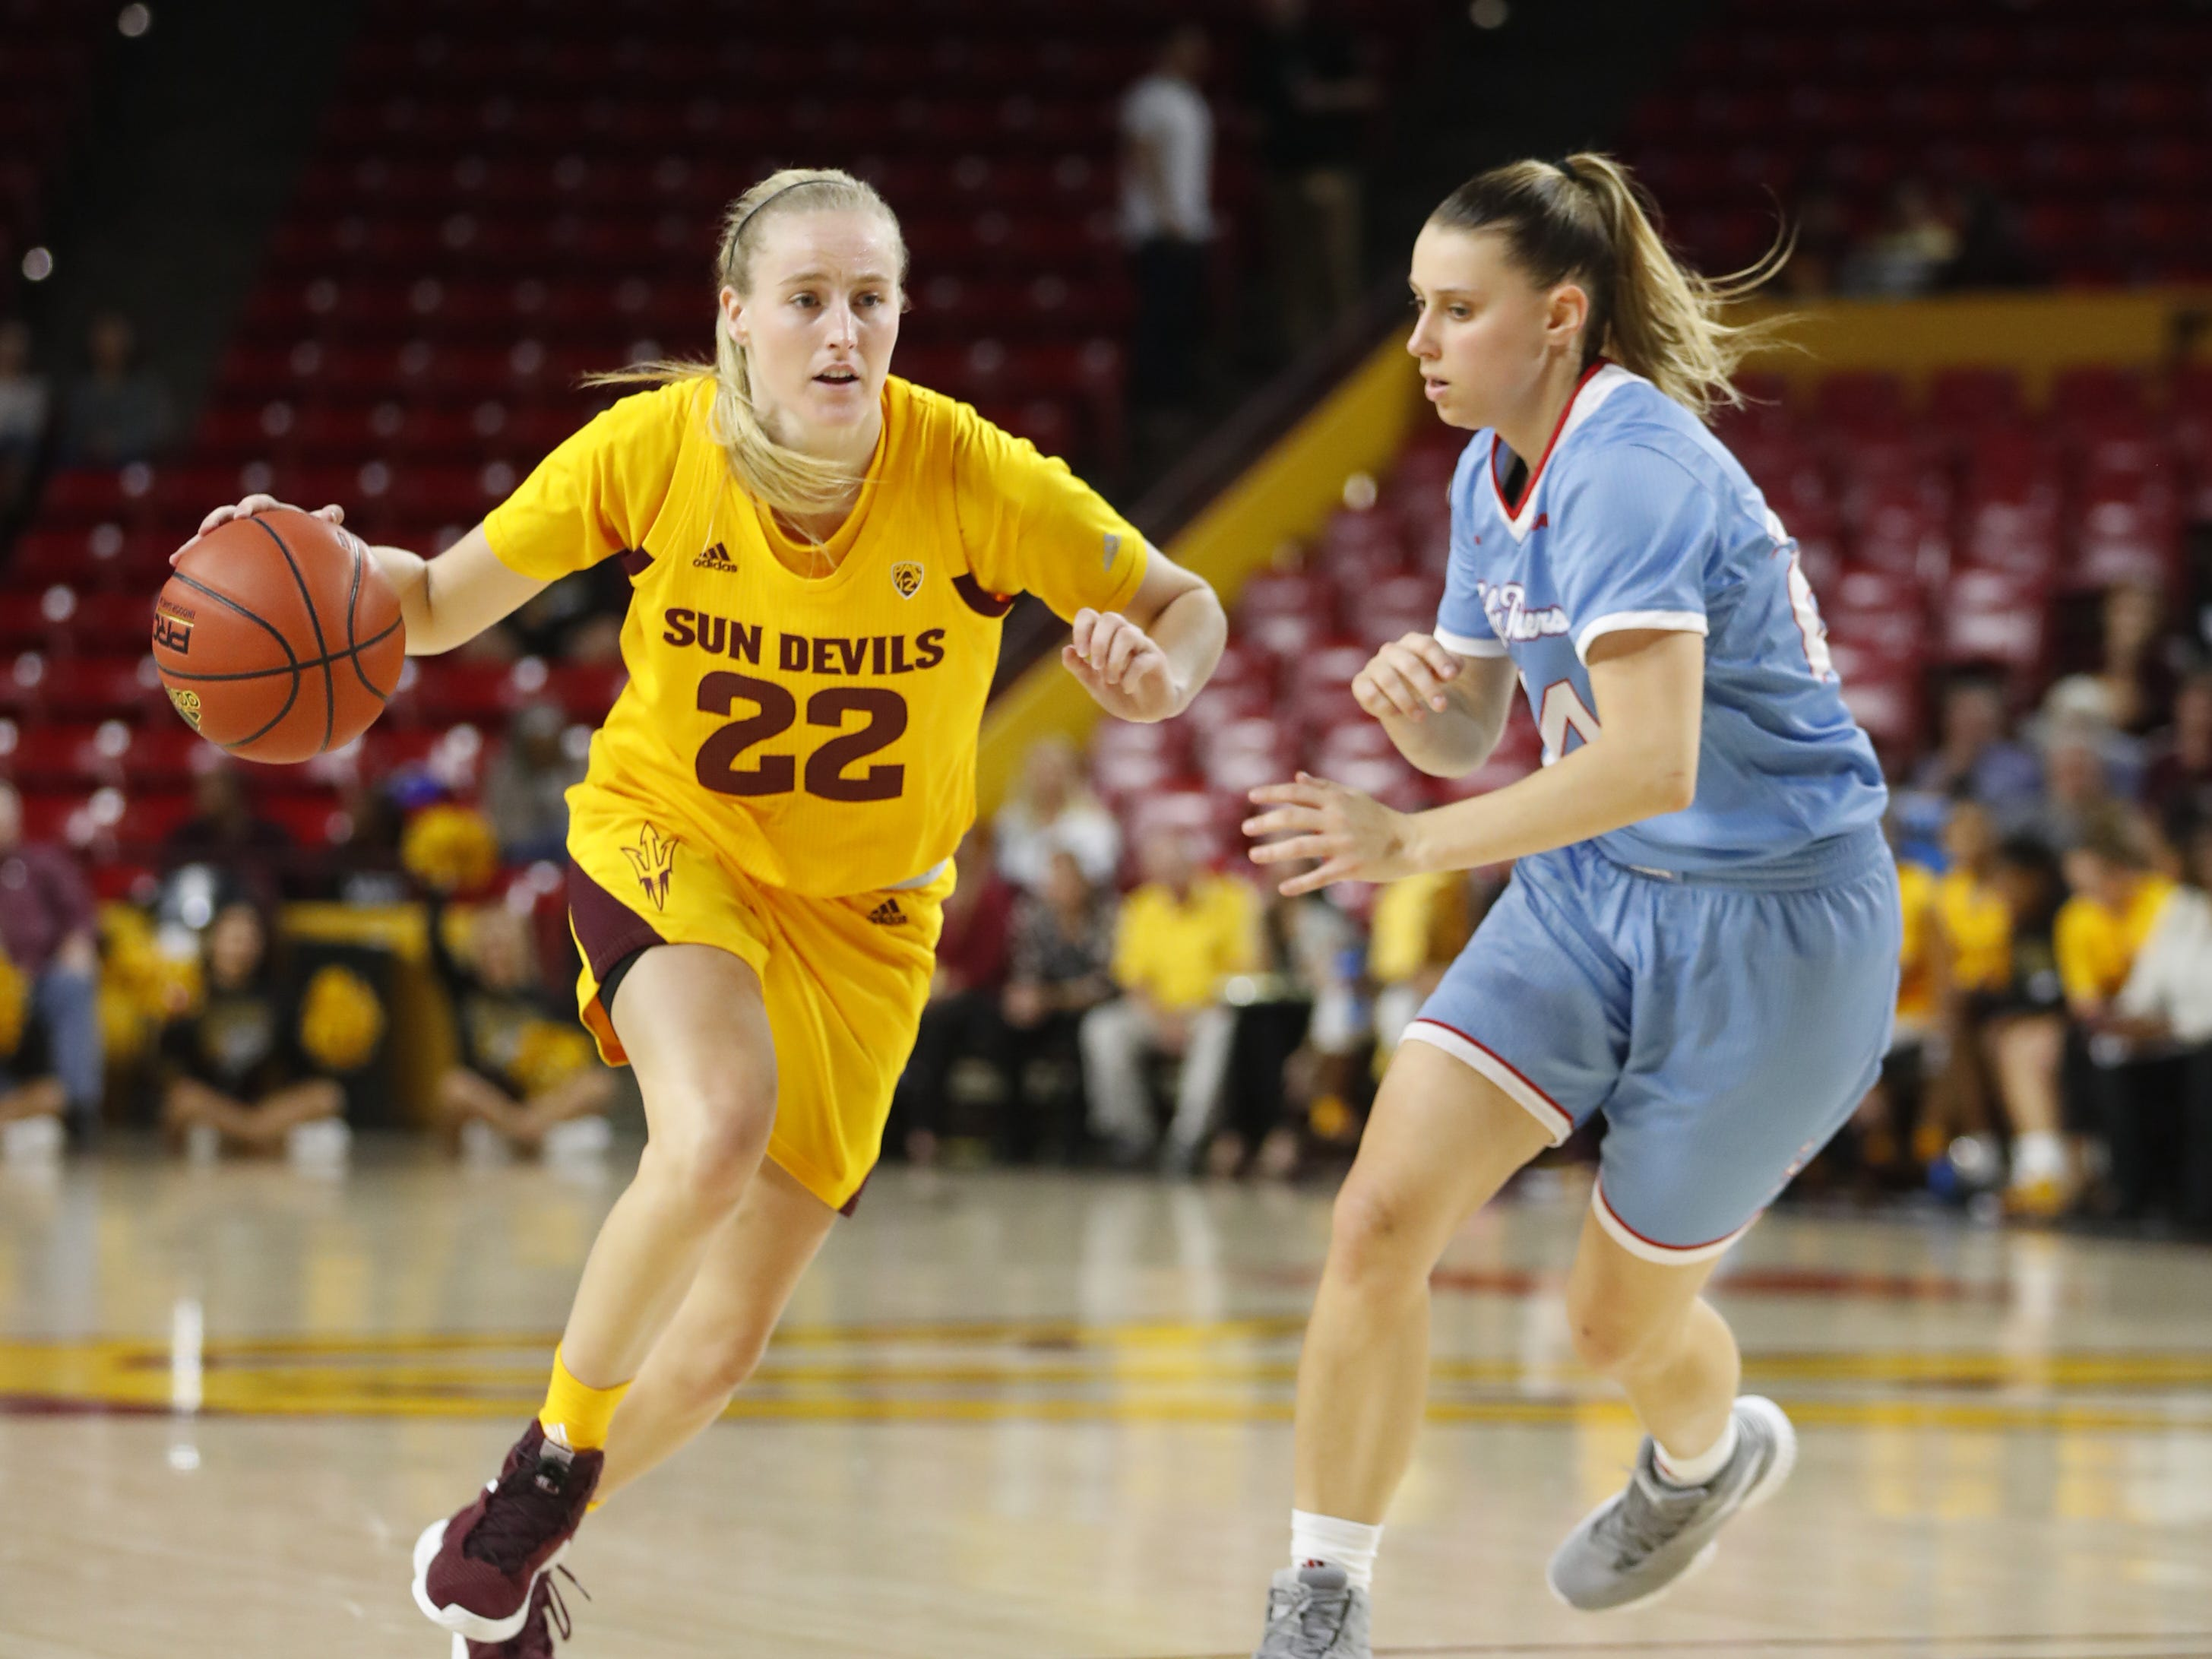 ASU's Courtney Ekmark (22) drives against Louisiana Tech's Taylor Stahly (24) during the first half at Wells Fargo Arena in Tempe, Ariz. on November 30, 2018.